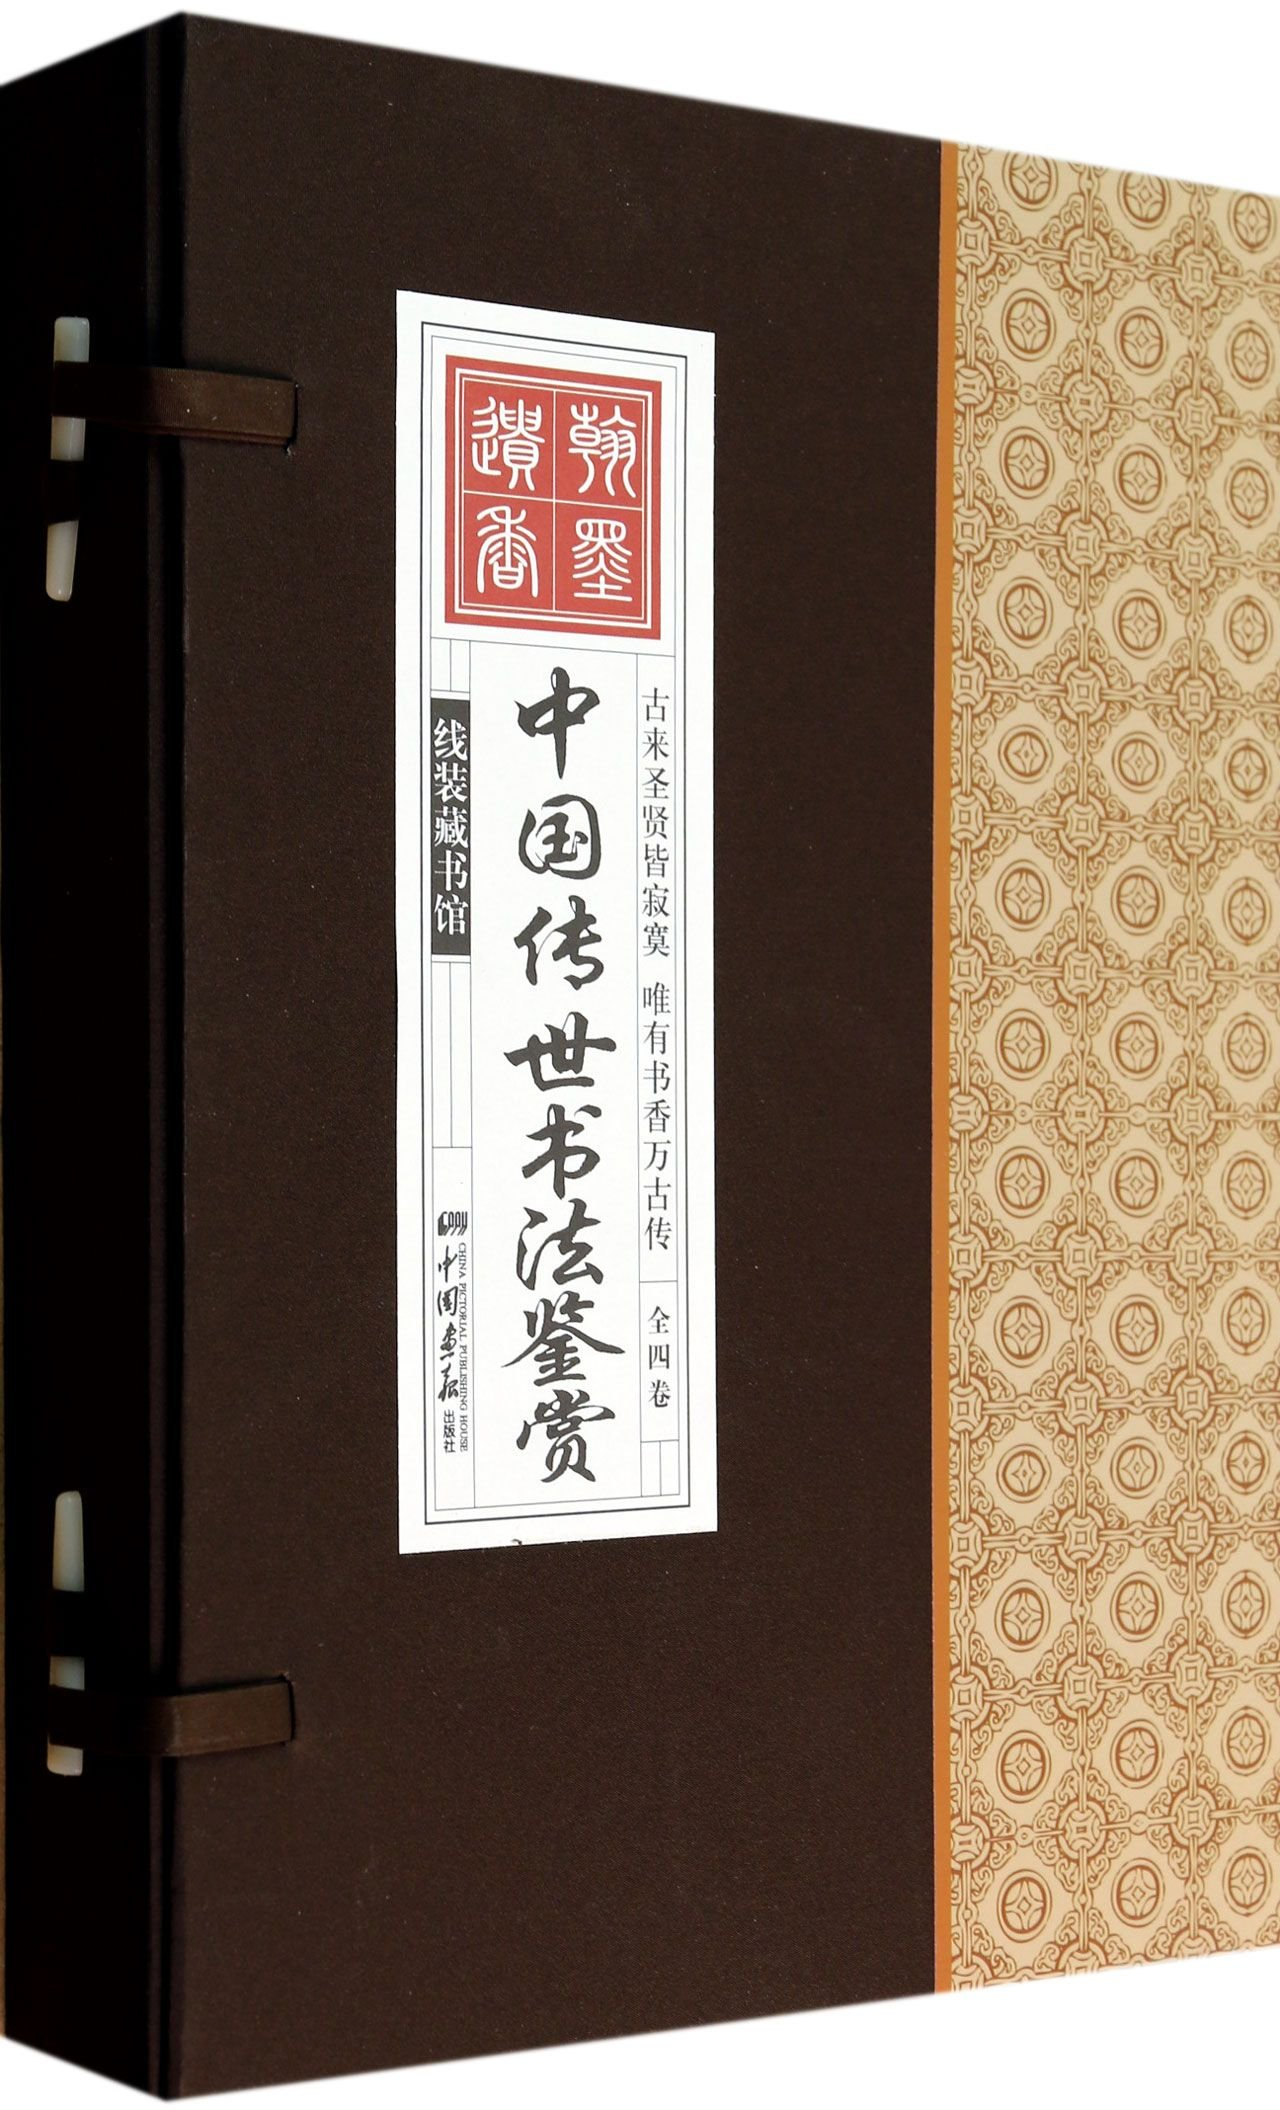 Chinese calligraphy masterpieces Appreciation - all four volumes(Chinese Edition) pdf epub